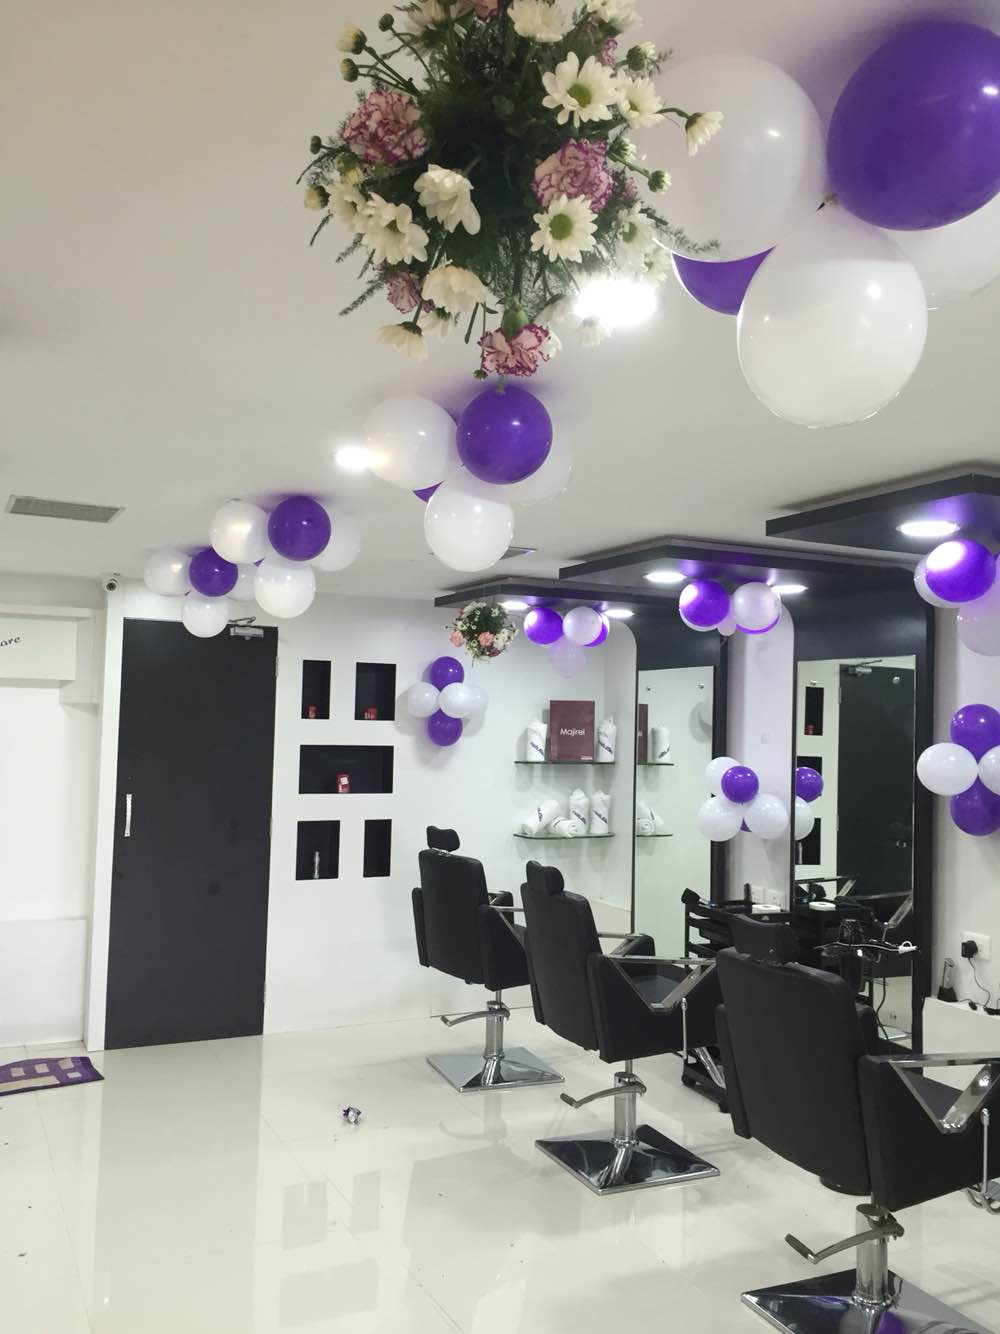 interior deco done with purple and white theme